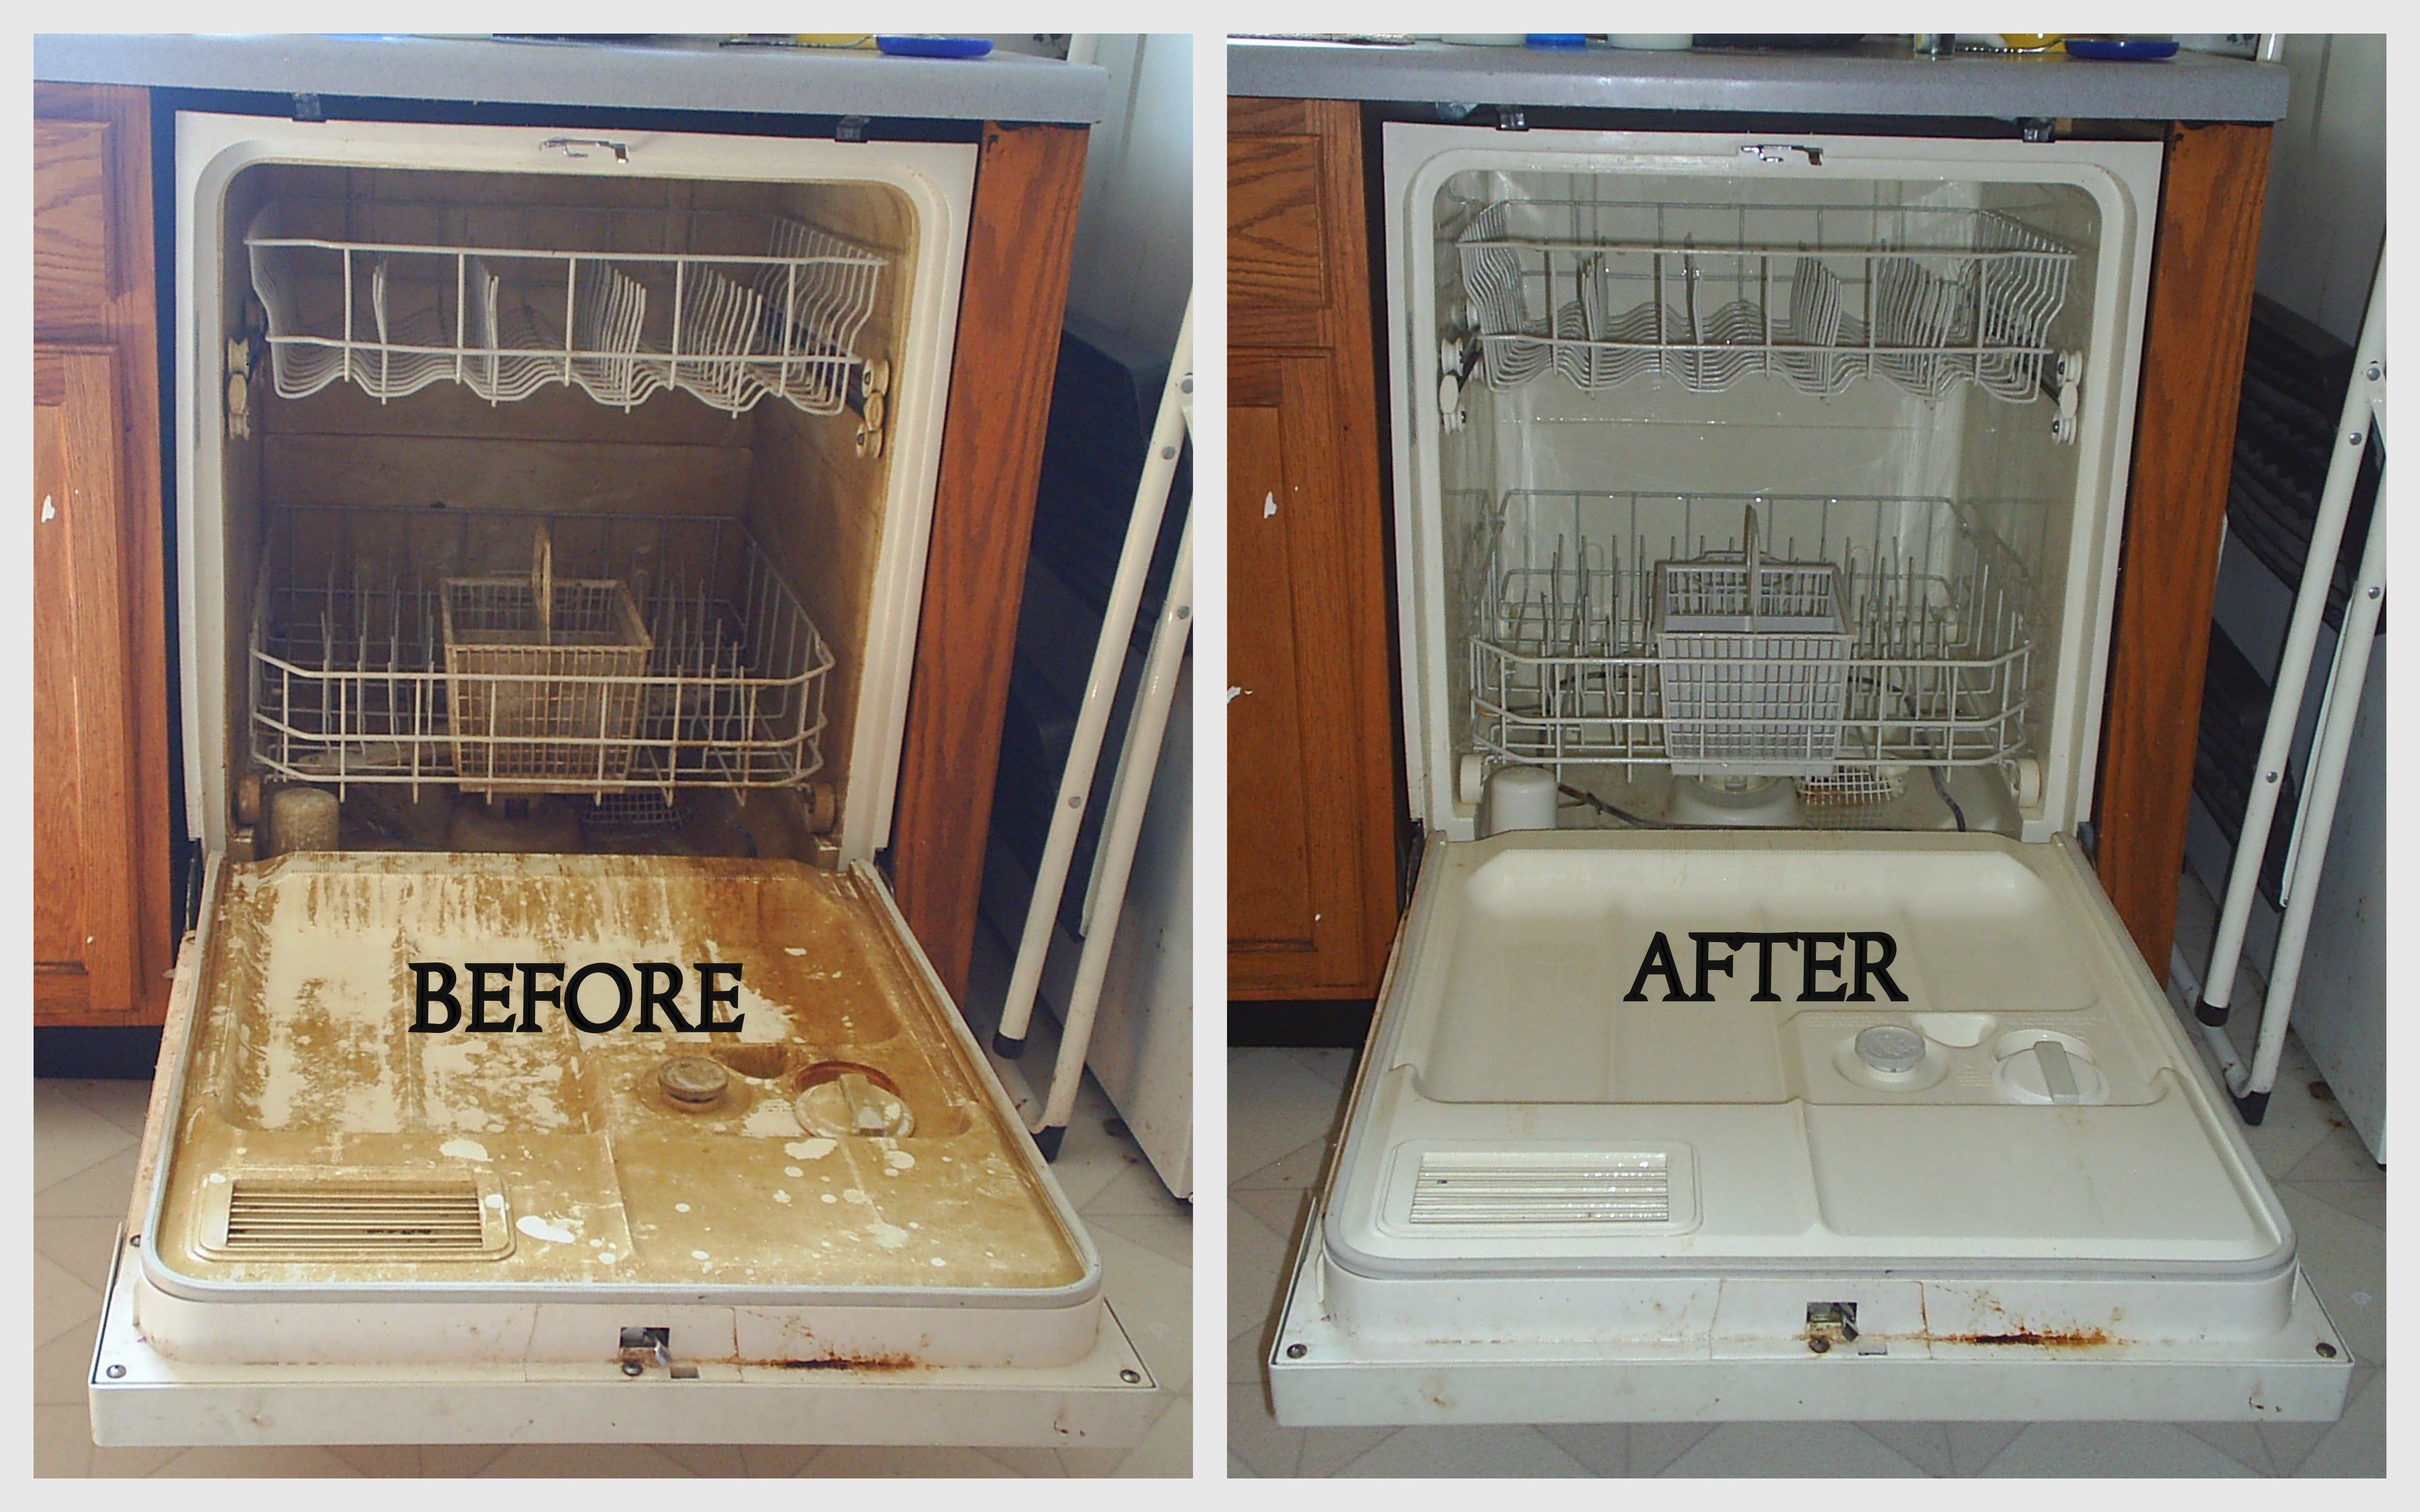 Lemi shine to clean hard water stains in dishwasher. My before was ...